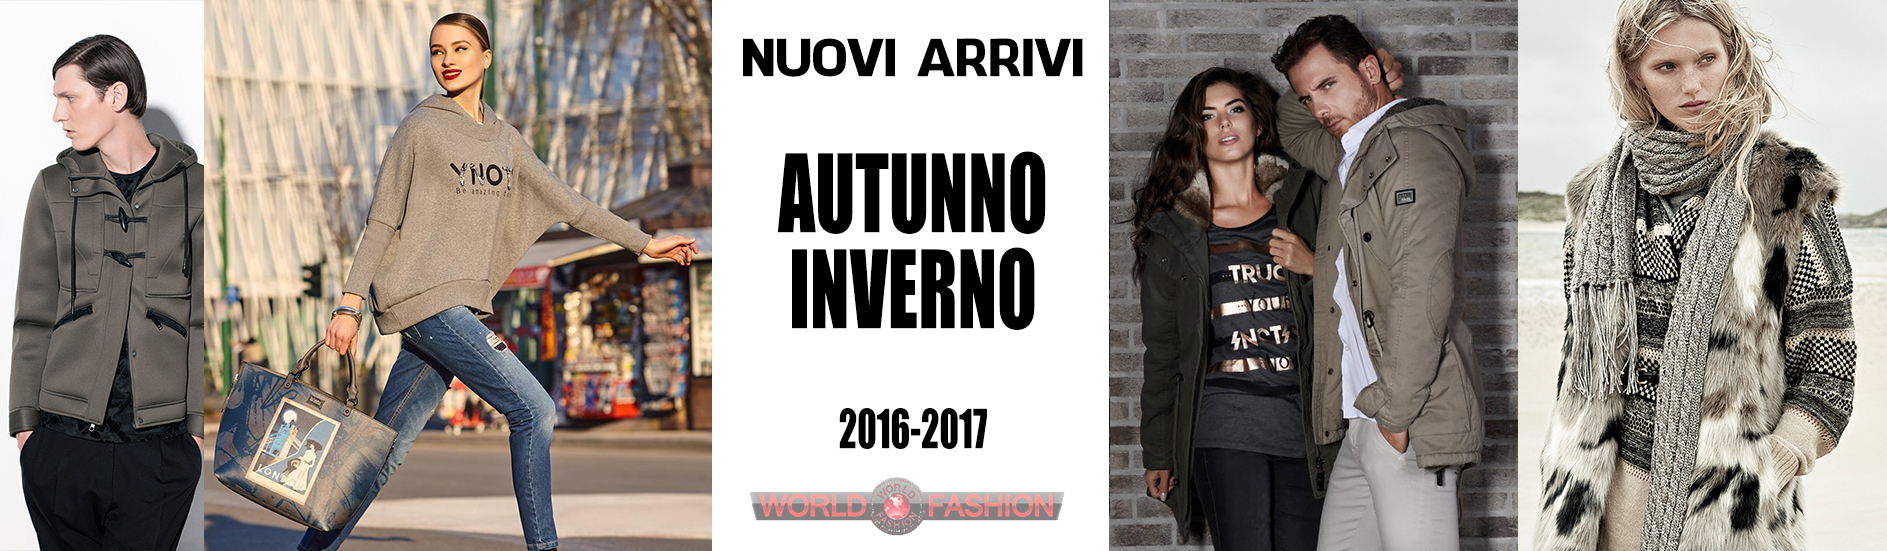 world-fashion-autunno-inverno-2016-2017-2